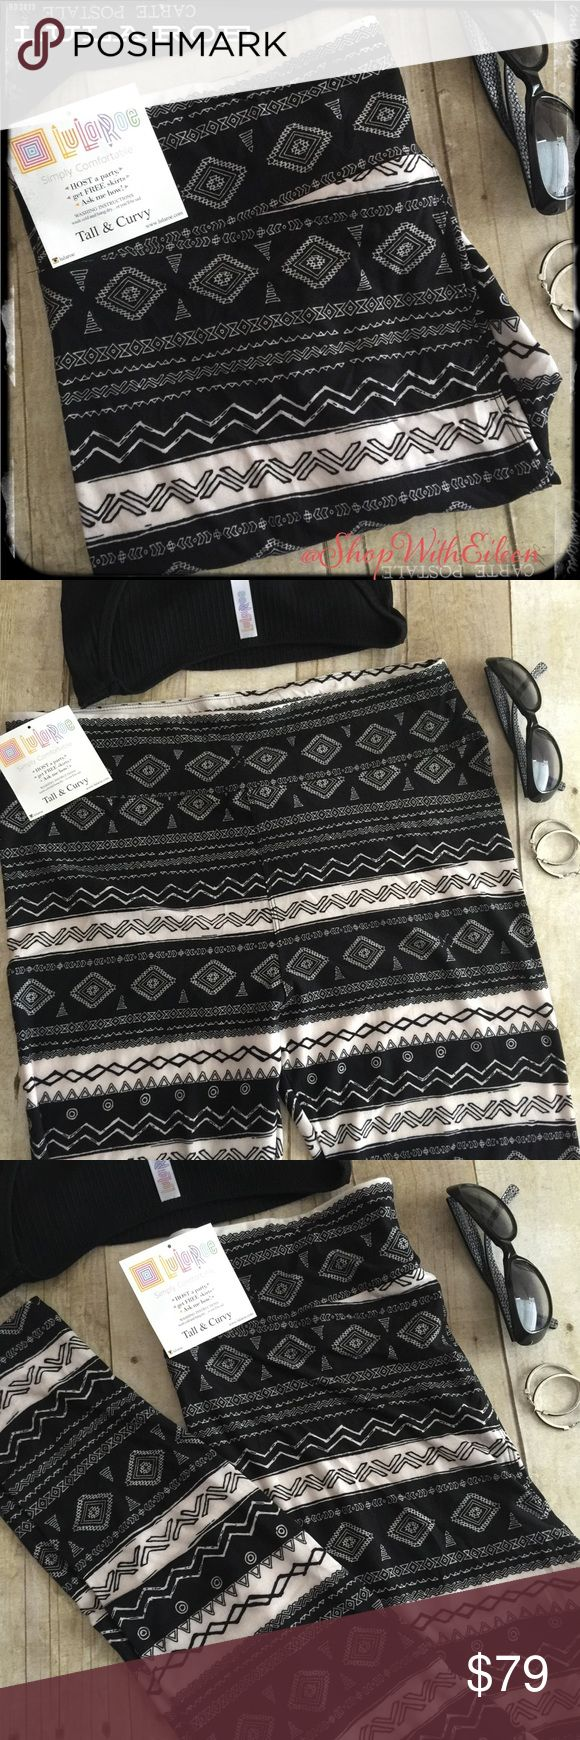 LulaRoe BLACK & WHITE AZTEC TC Leggings! ❤️  LulaRoe BLACK & WHITE AZTEC TC Leggings! Classy & Sassy! Black & White Aztec print make up these AHHMMAAZZIINGG leggings!!!! THESE LINE UP PERFECTLY! Very sought after NEW print & hard to find! Supply + DEMAND = Price These are made in Indonesia. * I am not a consultant… I am just a LulaRoe addict and love the hunt to find great prints! Enjoy!  {$25 is not an acceptable offer} LuLaRoe Pants Leggings